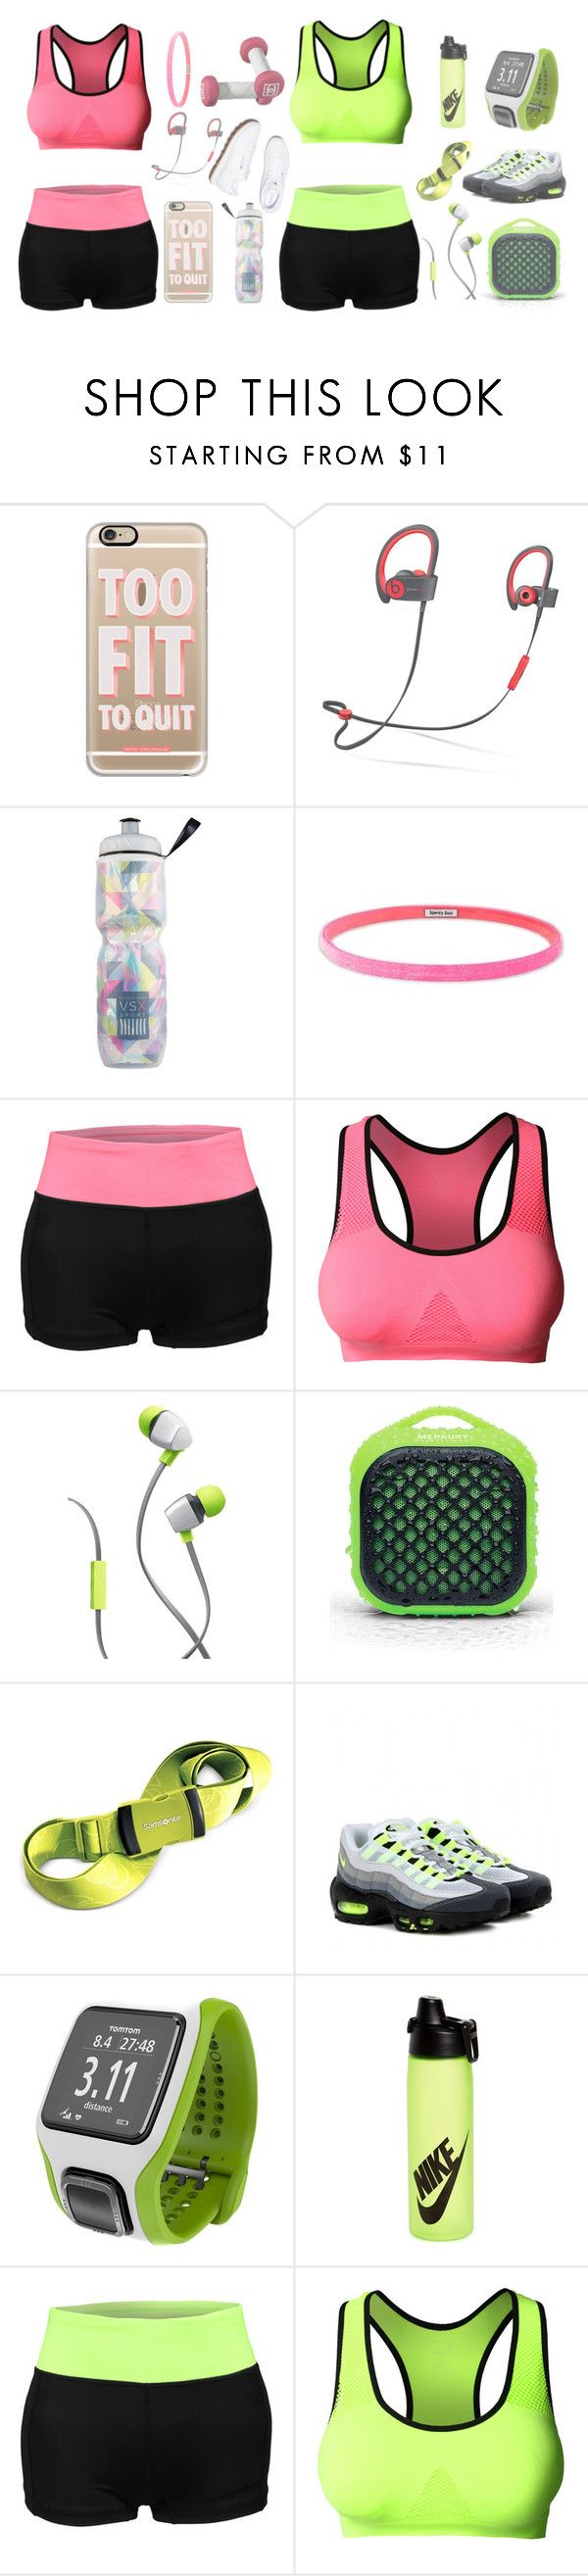 """""""Neon Pink vs. Neon Green"""" by le3noclothing ❤ liked on Polyvore featuring Reebok, Casetify, Beats by Dr. Dre, Victoria's Secret, Sparkly Soul, LE3NO, Merkury Innovations, Samsonite, NIKE and TomTom"""